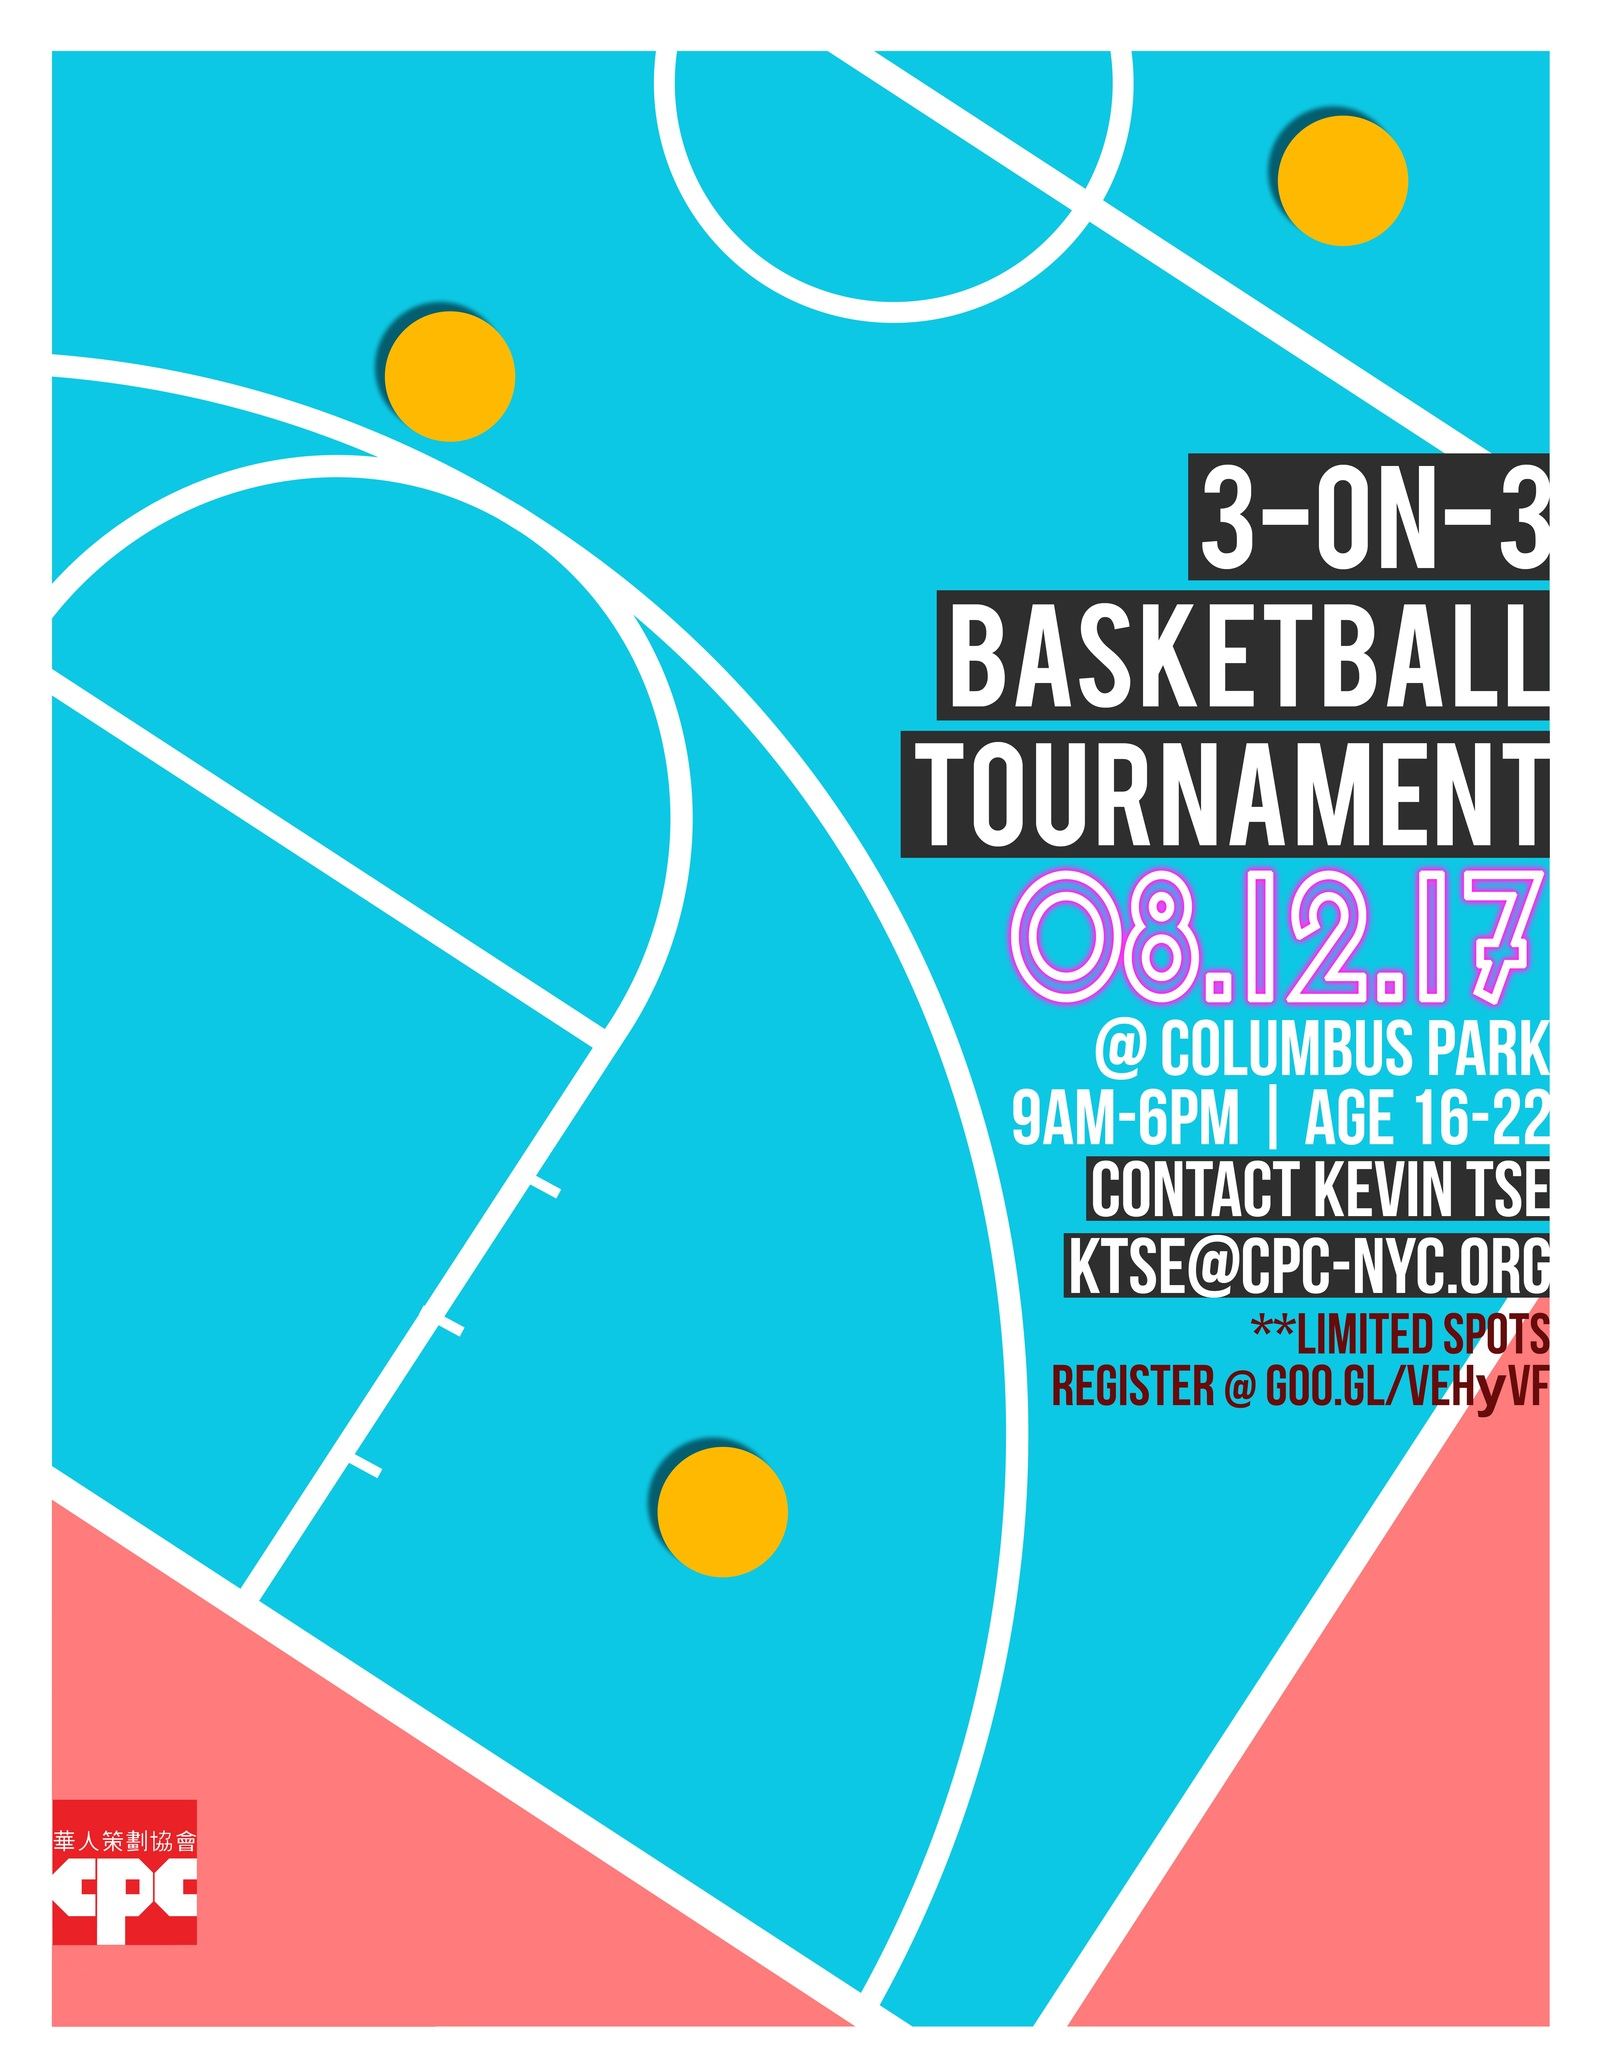 CPC 3-on-3 Basketball Tournament August 19th 2017